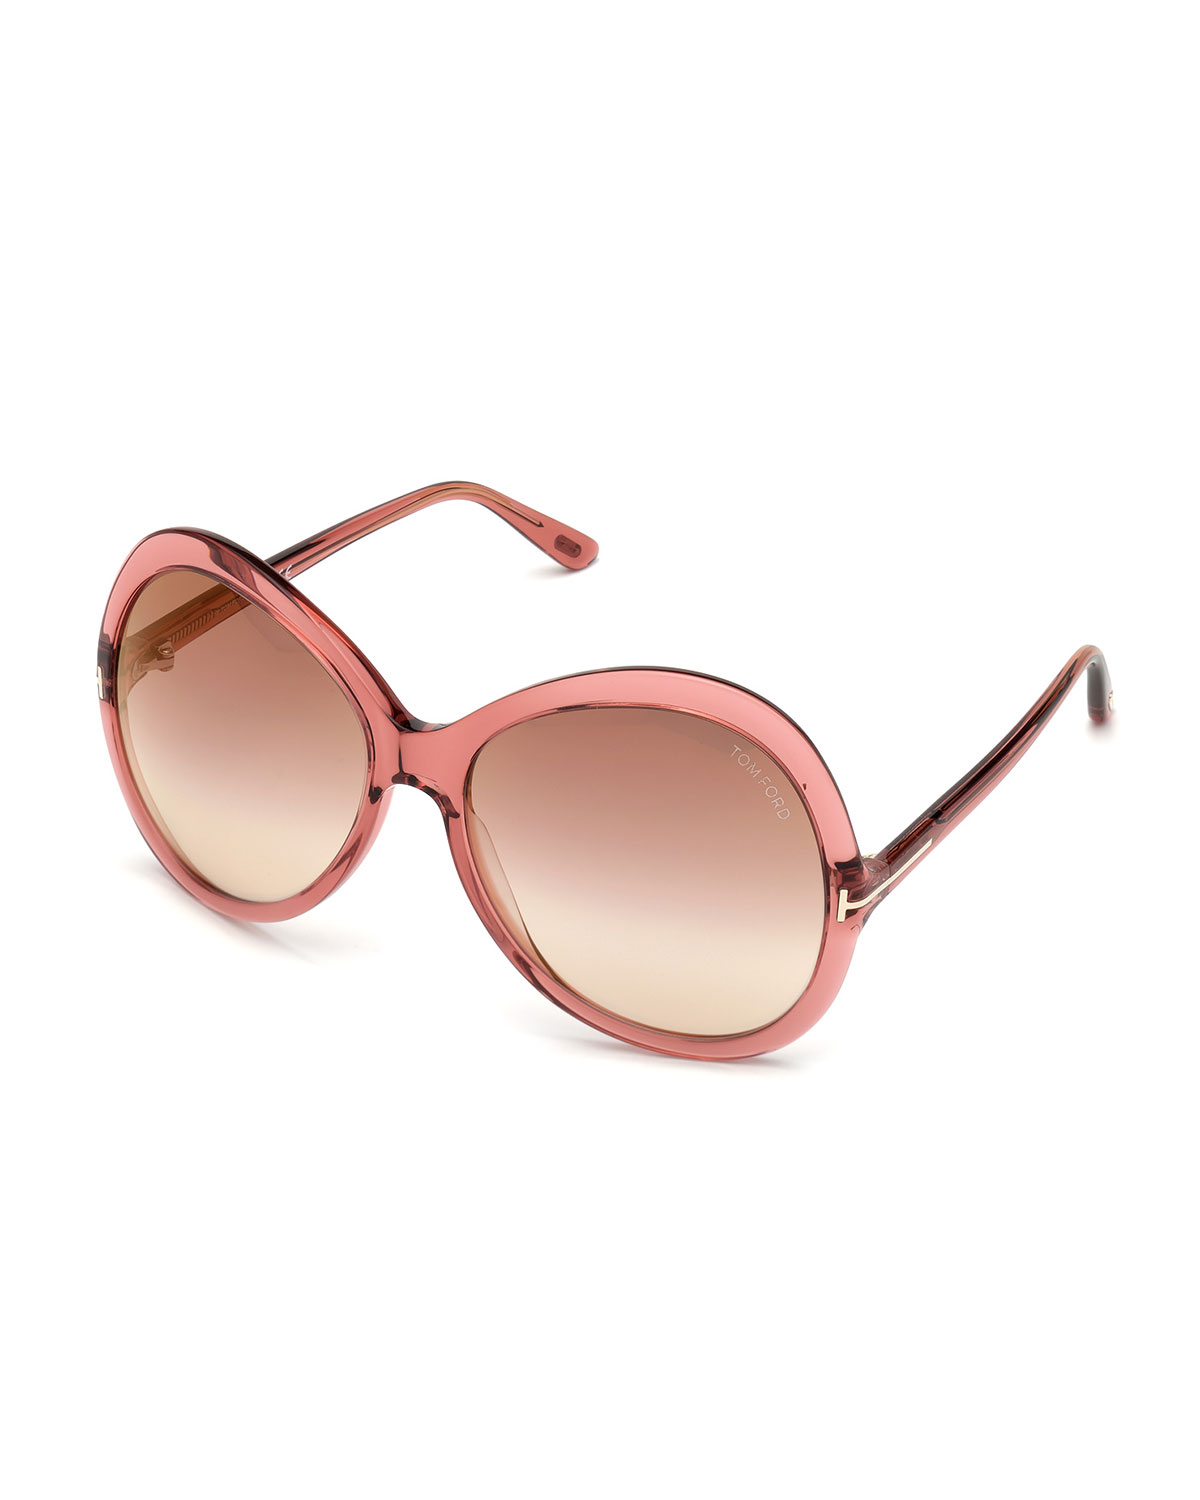 Tom Ford Sunglasses Rose Gradient Acetate Round Sunglasses